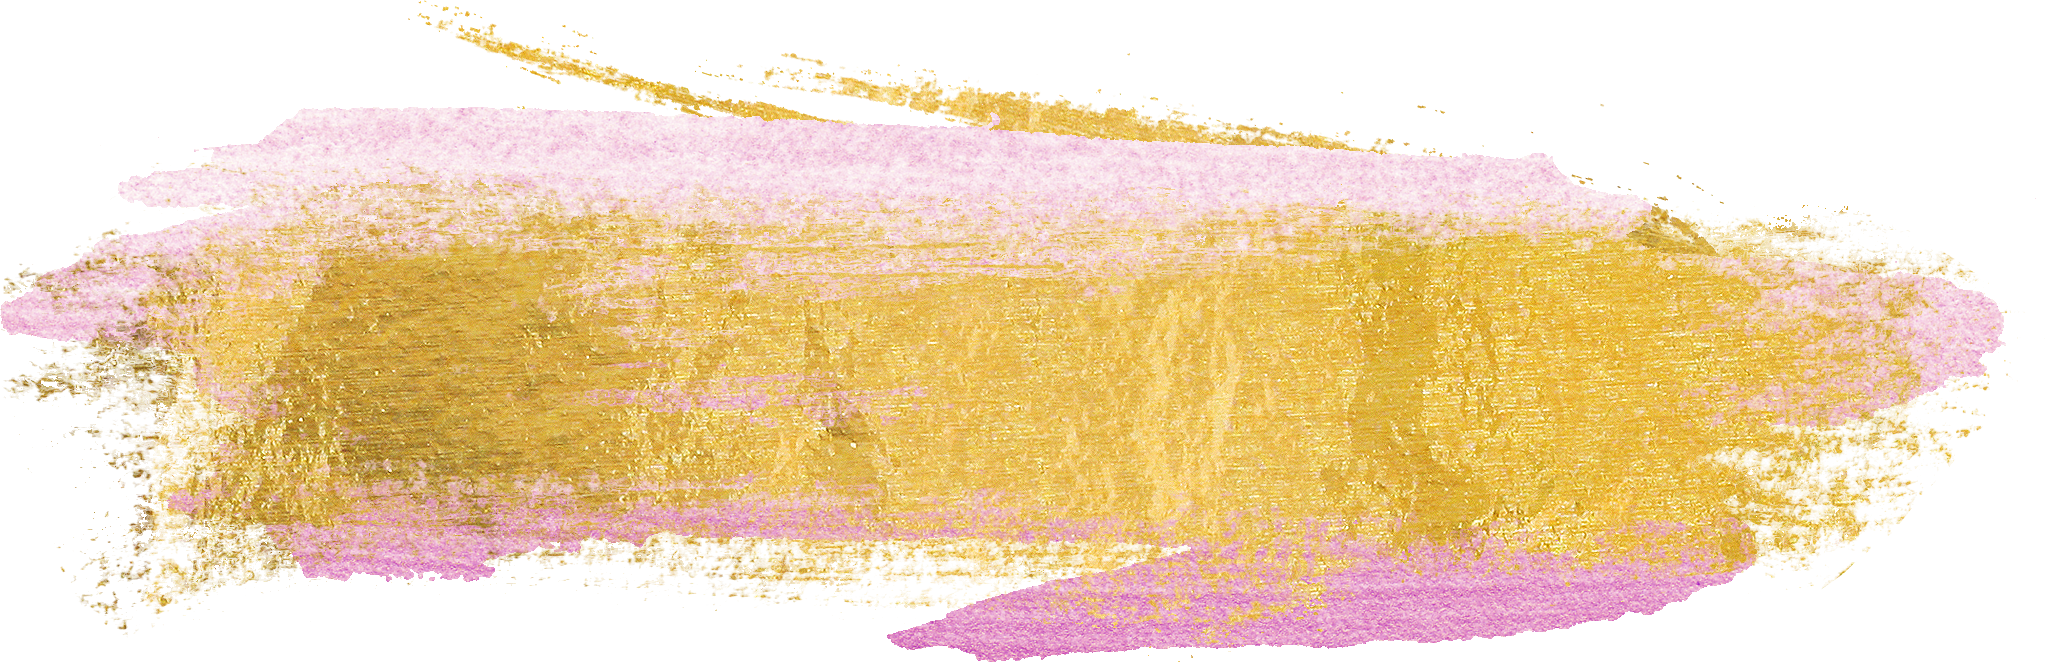 Gold paint png. Pink and transparent images